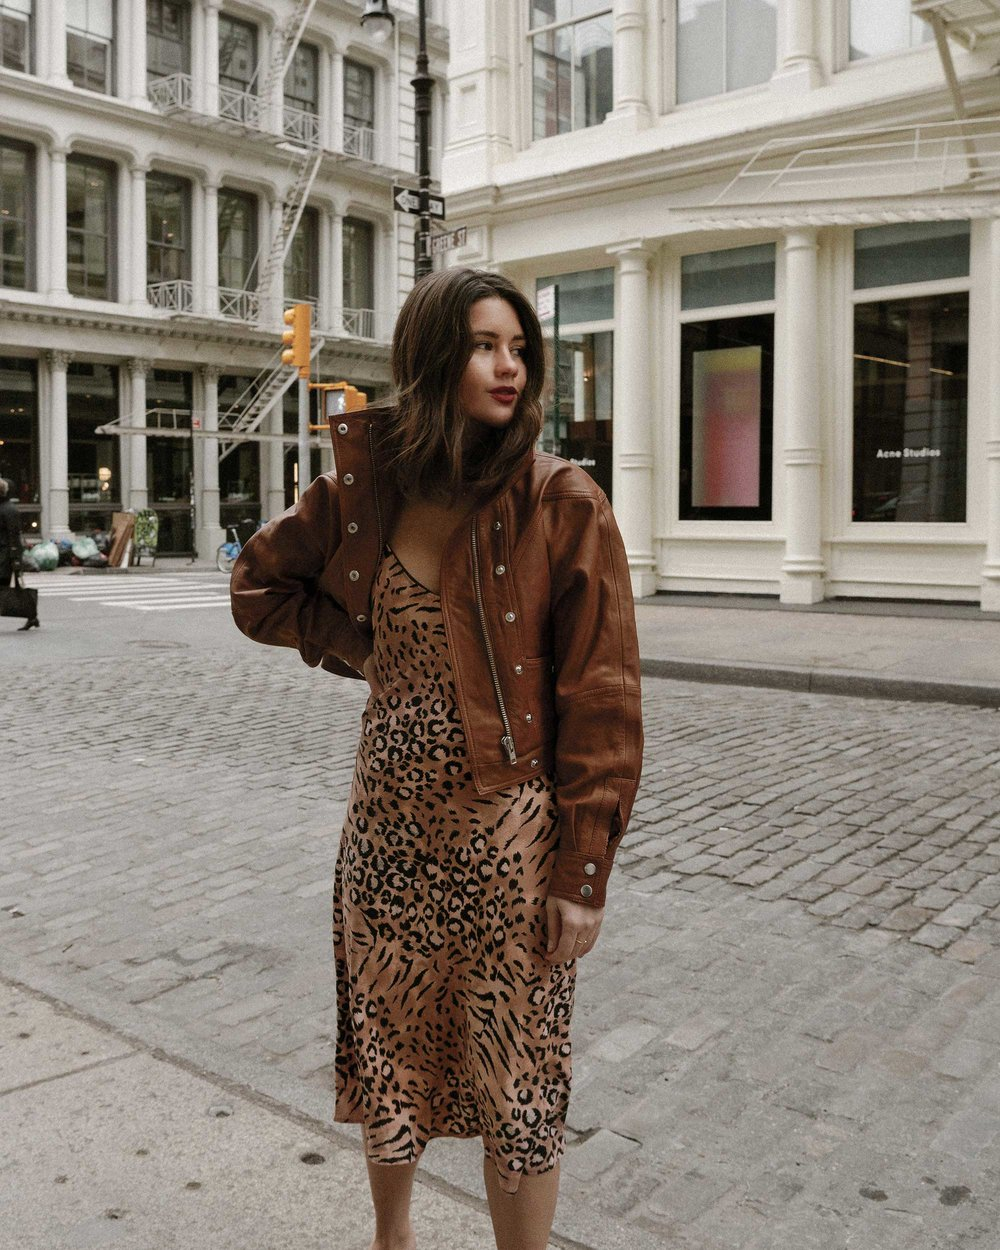 Sarah Butler of Sarah Styles Seattle wears PAIGE Cicely animal print slip dress and Revolve LPA oversized brown leather bomber jacket in Soho, New York | @sarahchristine, Seattle Blogger6.jpg